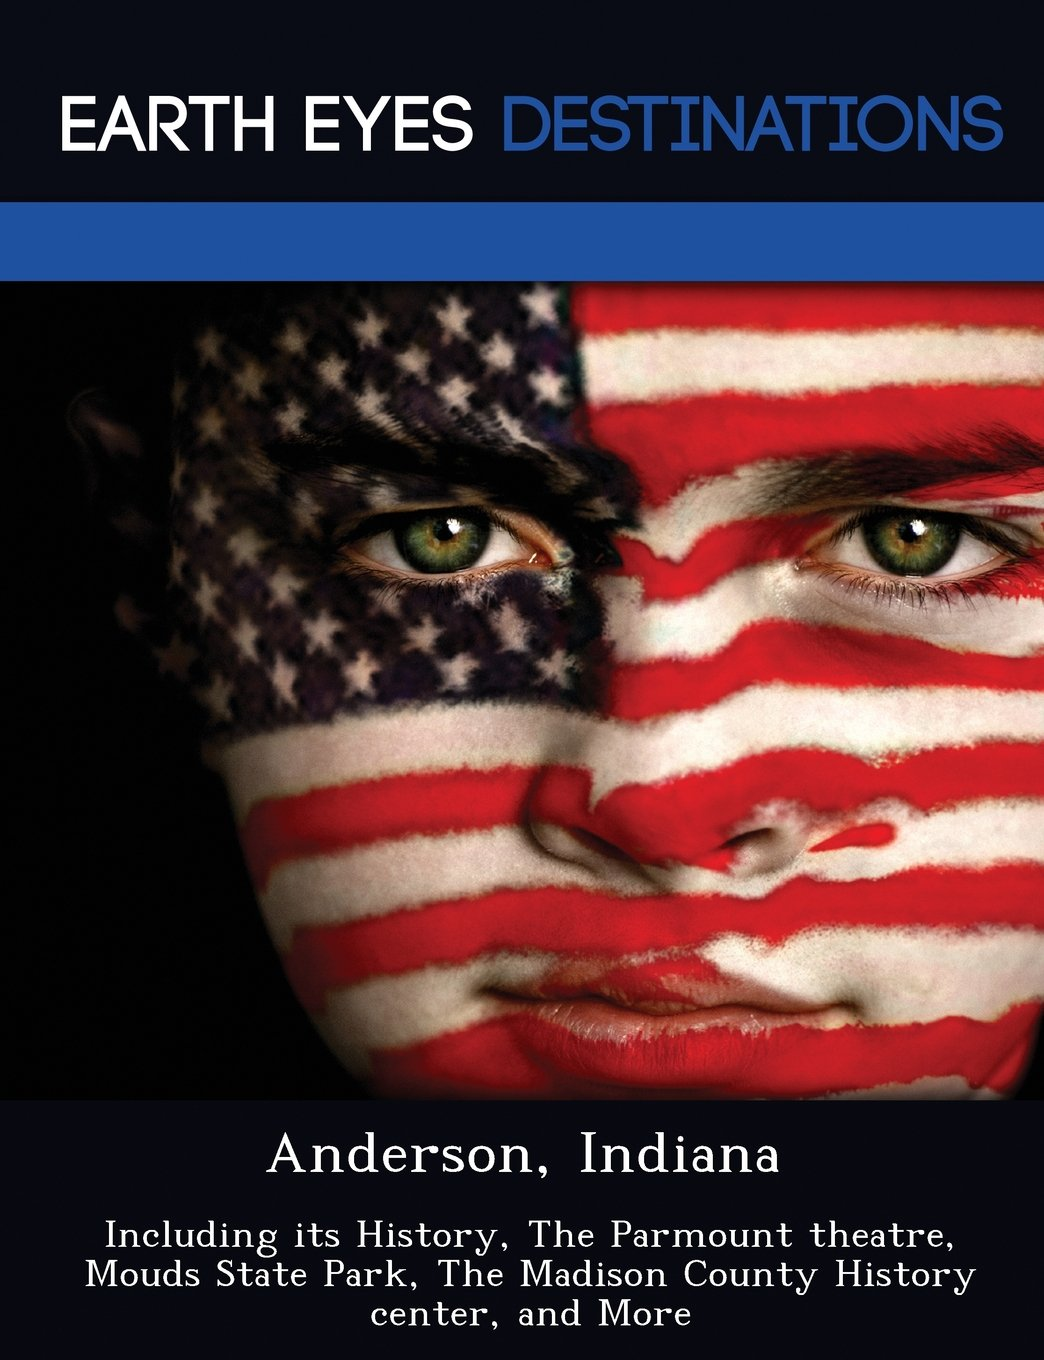 Read Online Anderson, Indiana: Including its History, The Parmount theatre, Mouds State Park, The Madison County History center, and More PDF